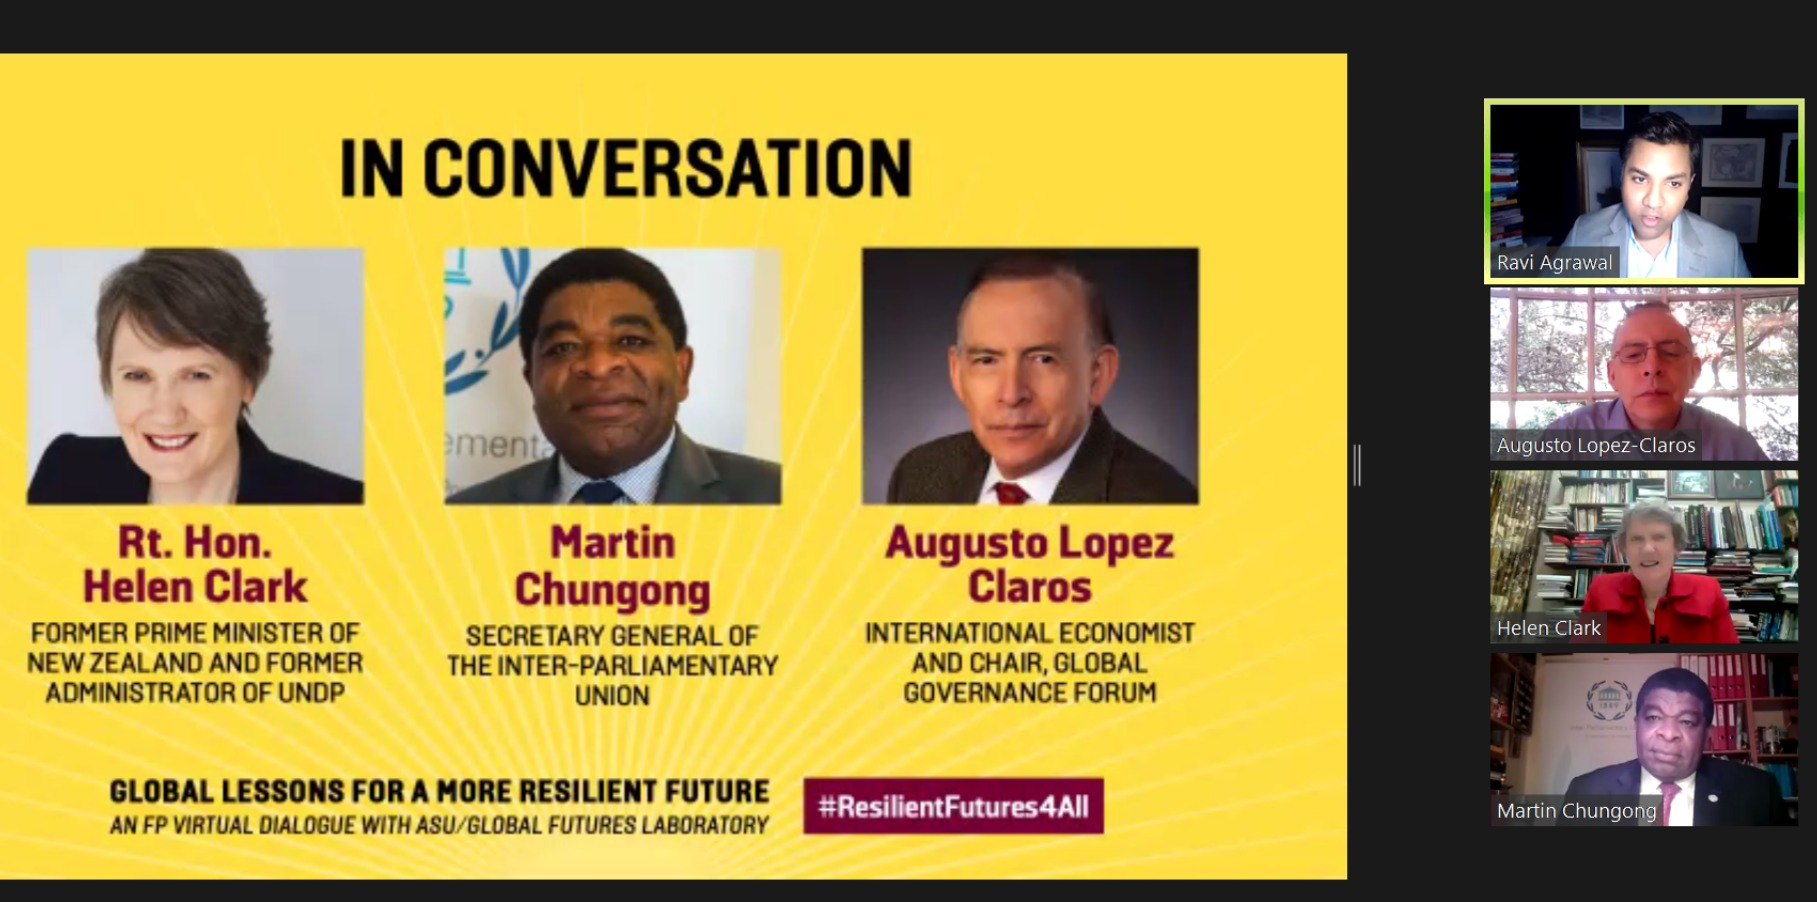 A Foreign Policy Journal and ASU/Global Futures Laboratory Virtual Dialogue